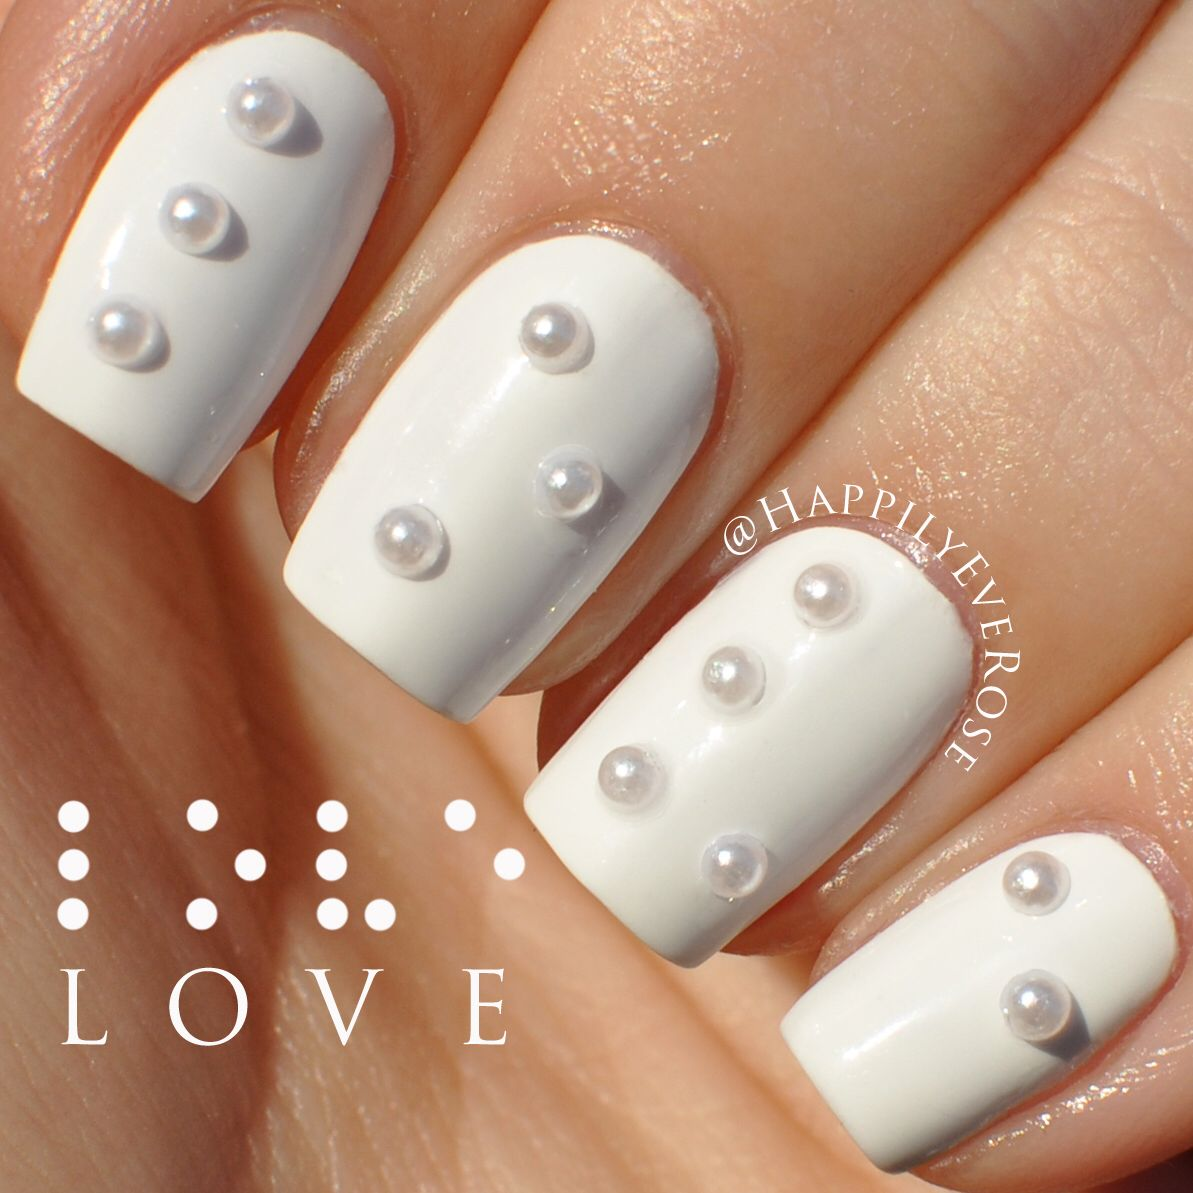 The word love in Braille nail art design for valentines day | Nails ...